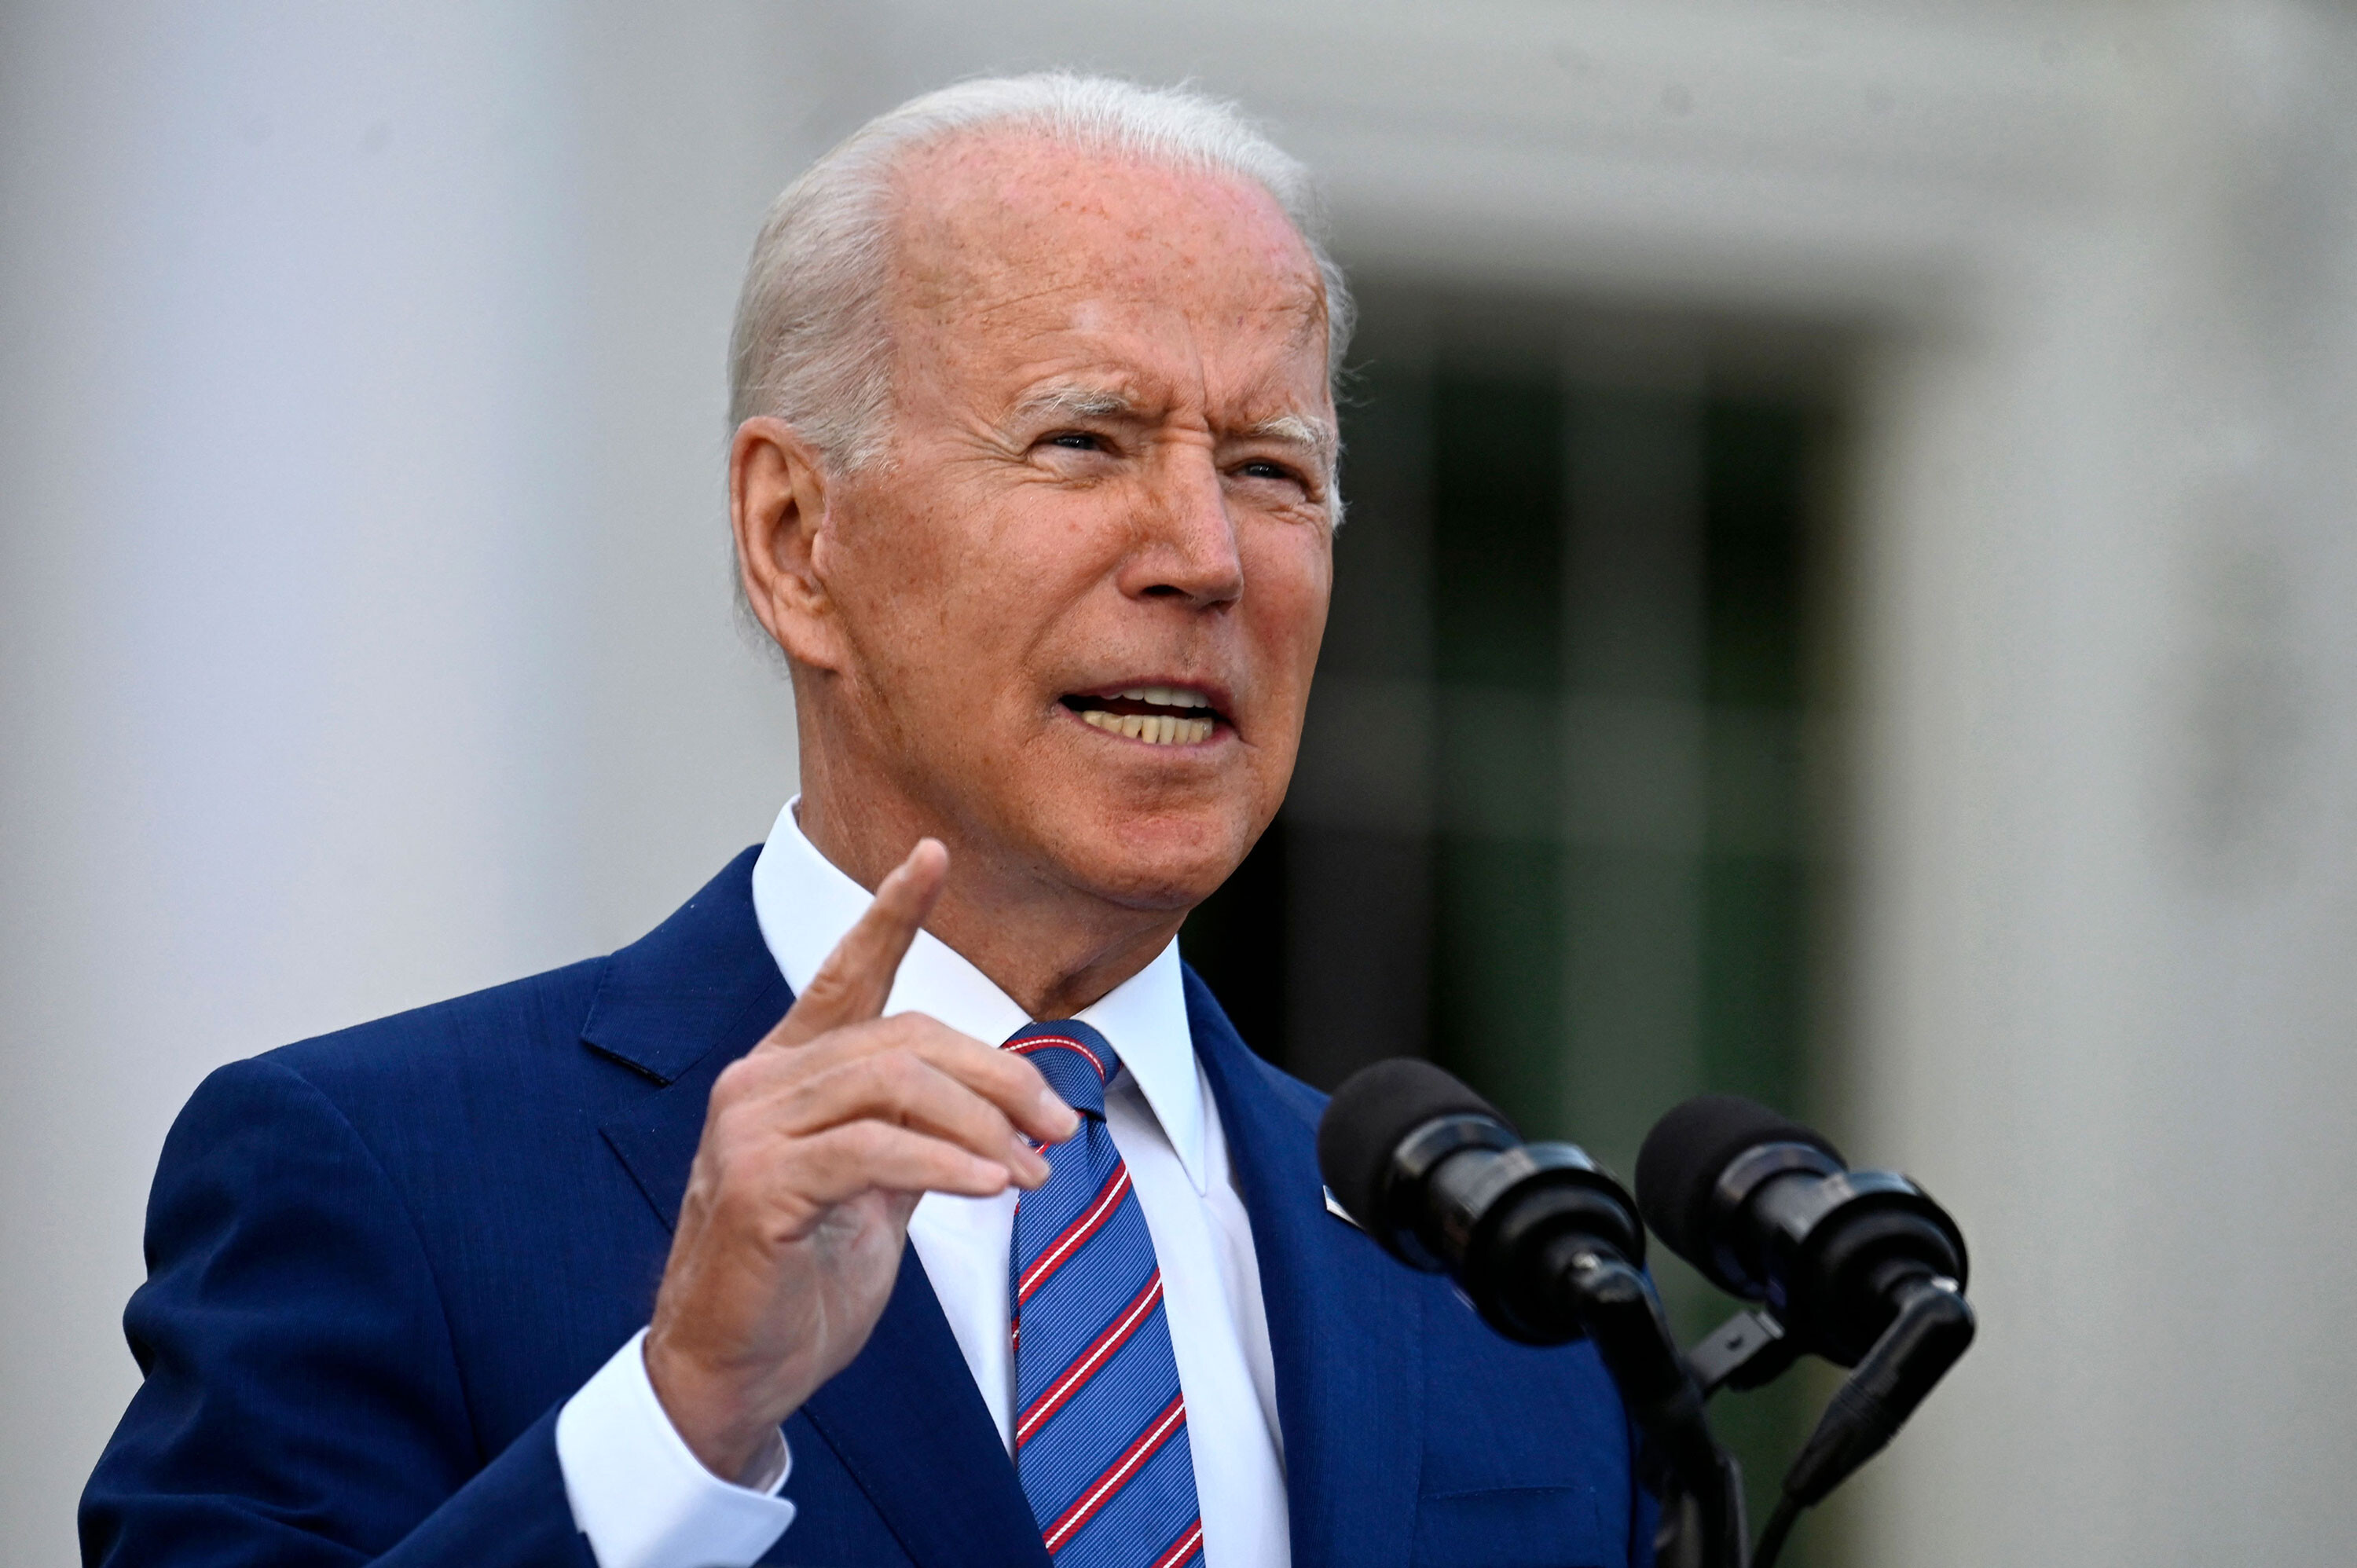 Biden pushes for 'generational investments in human infrastructure' in speech in Illinois